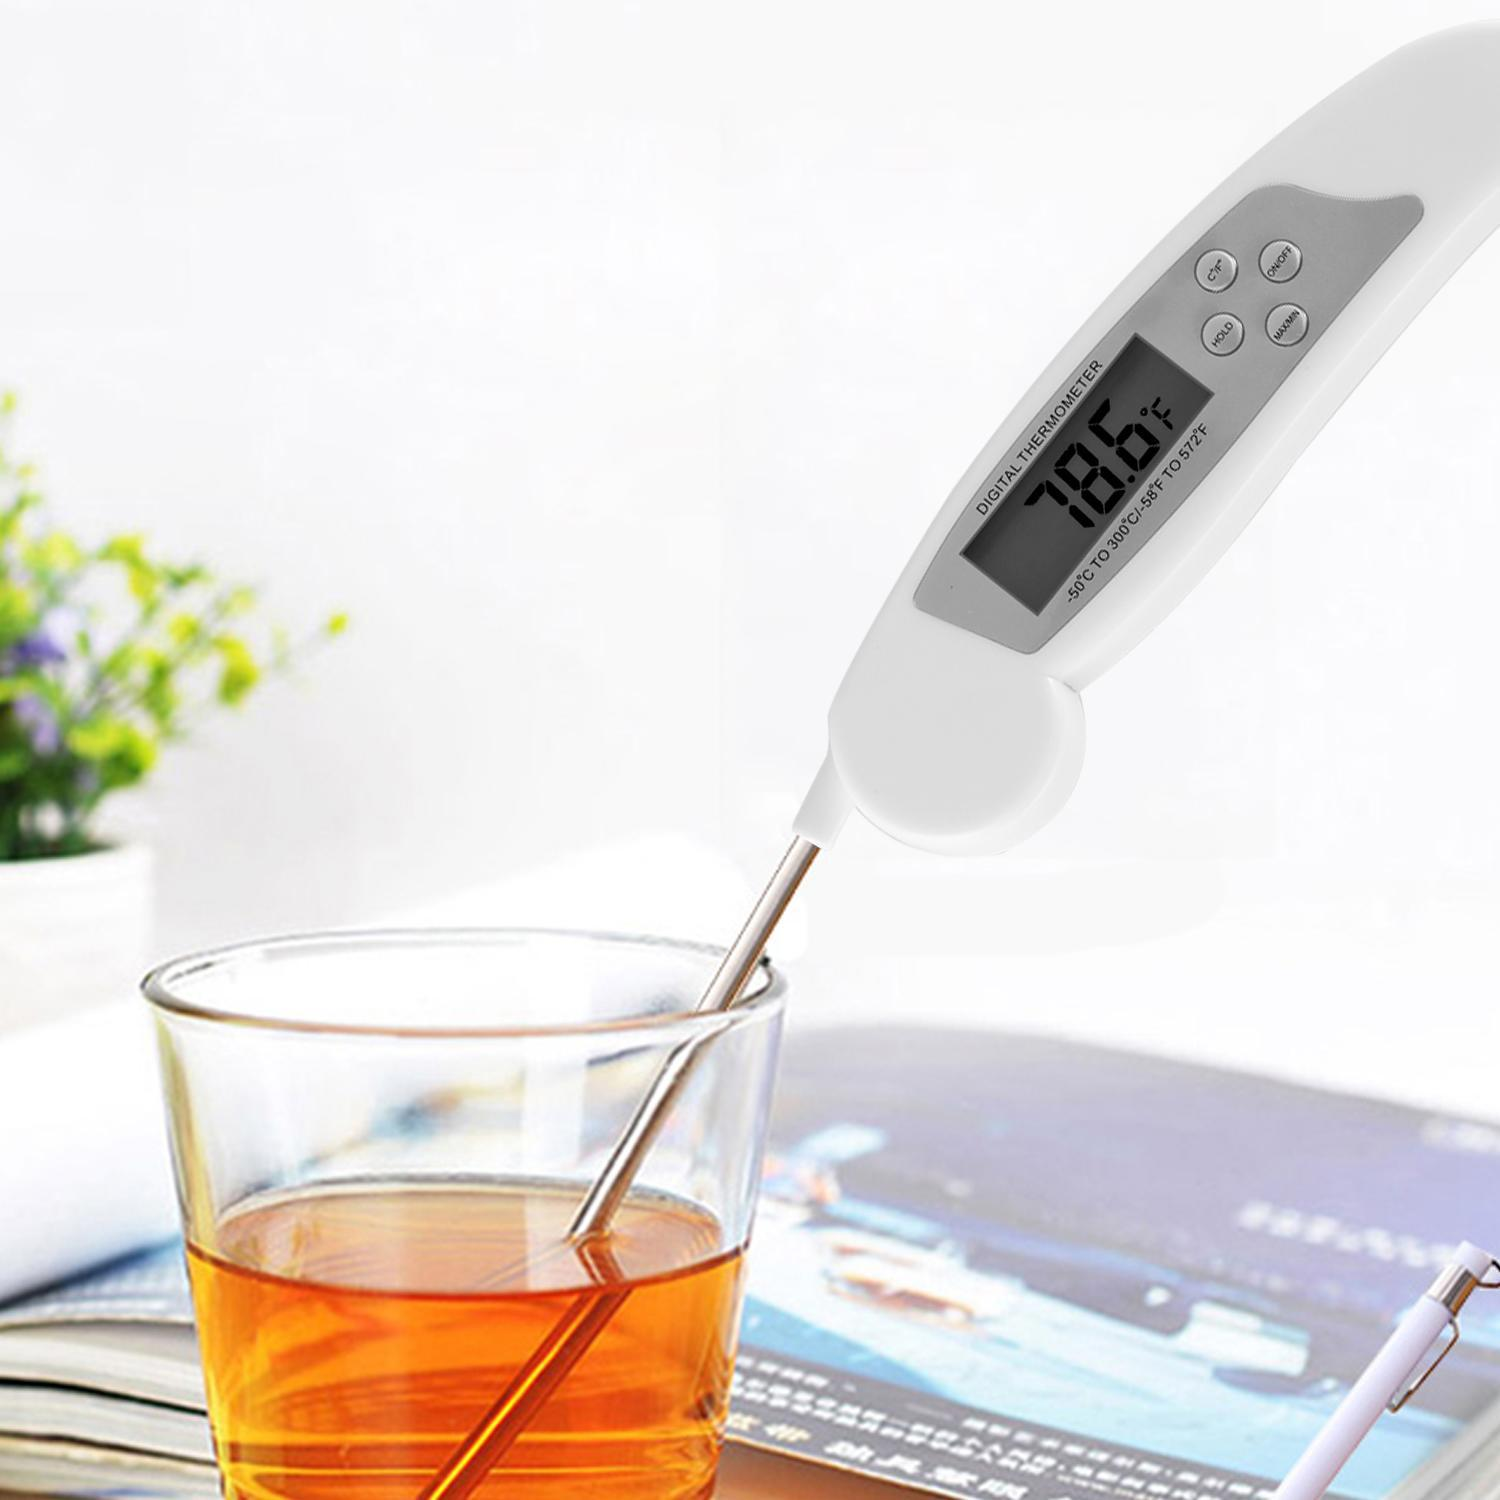 Outdoorstore Instant Read Digital Food Meat Thermometer for Cooking BBQ Grill Smoker OTST